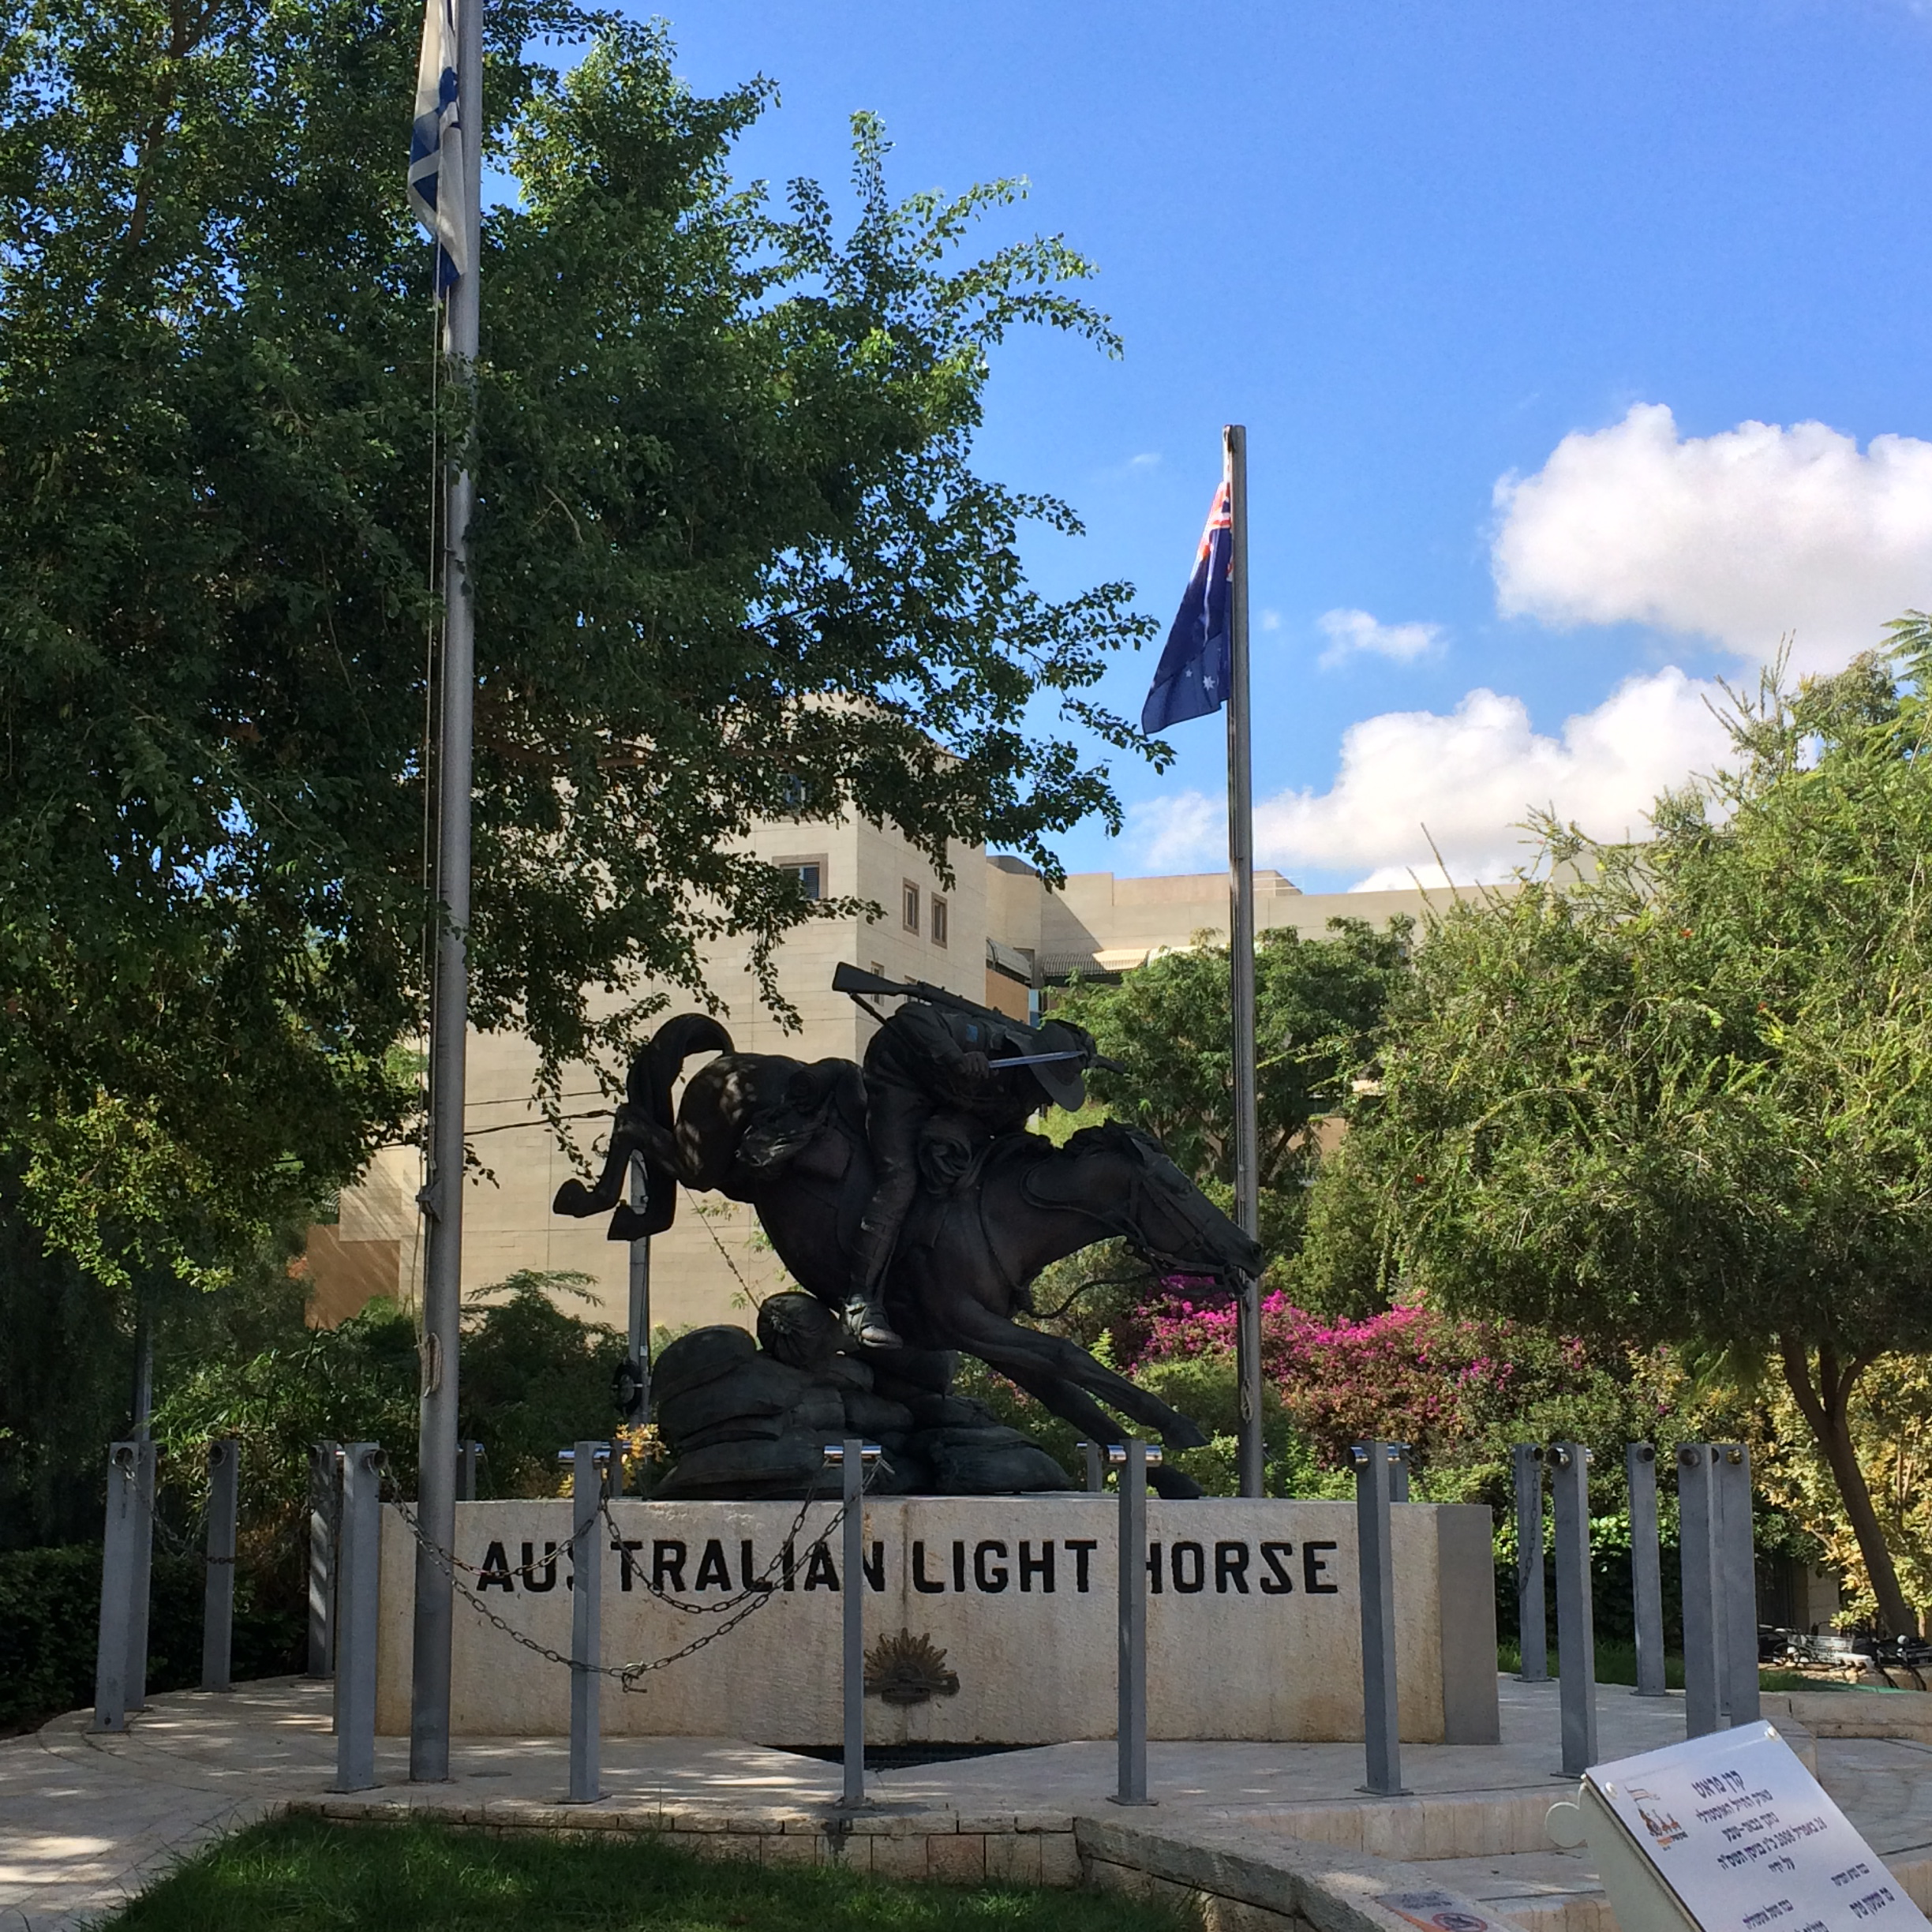 The Park of the Australian Soldier